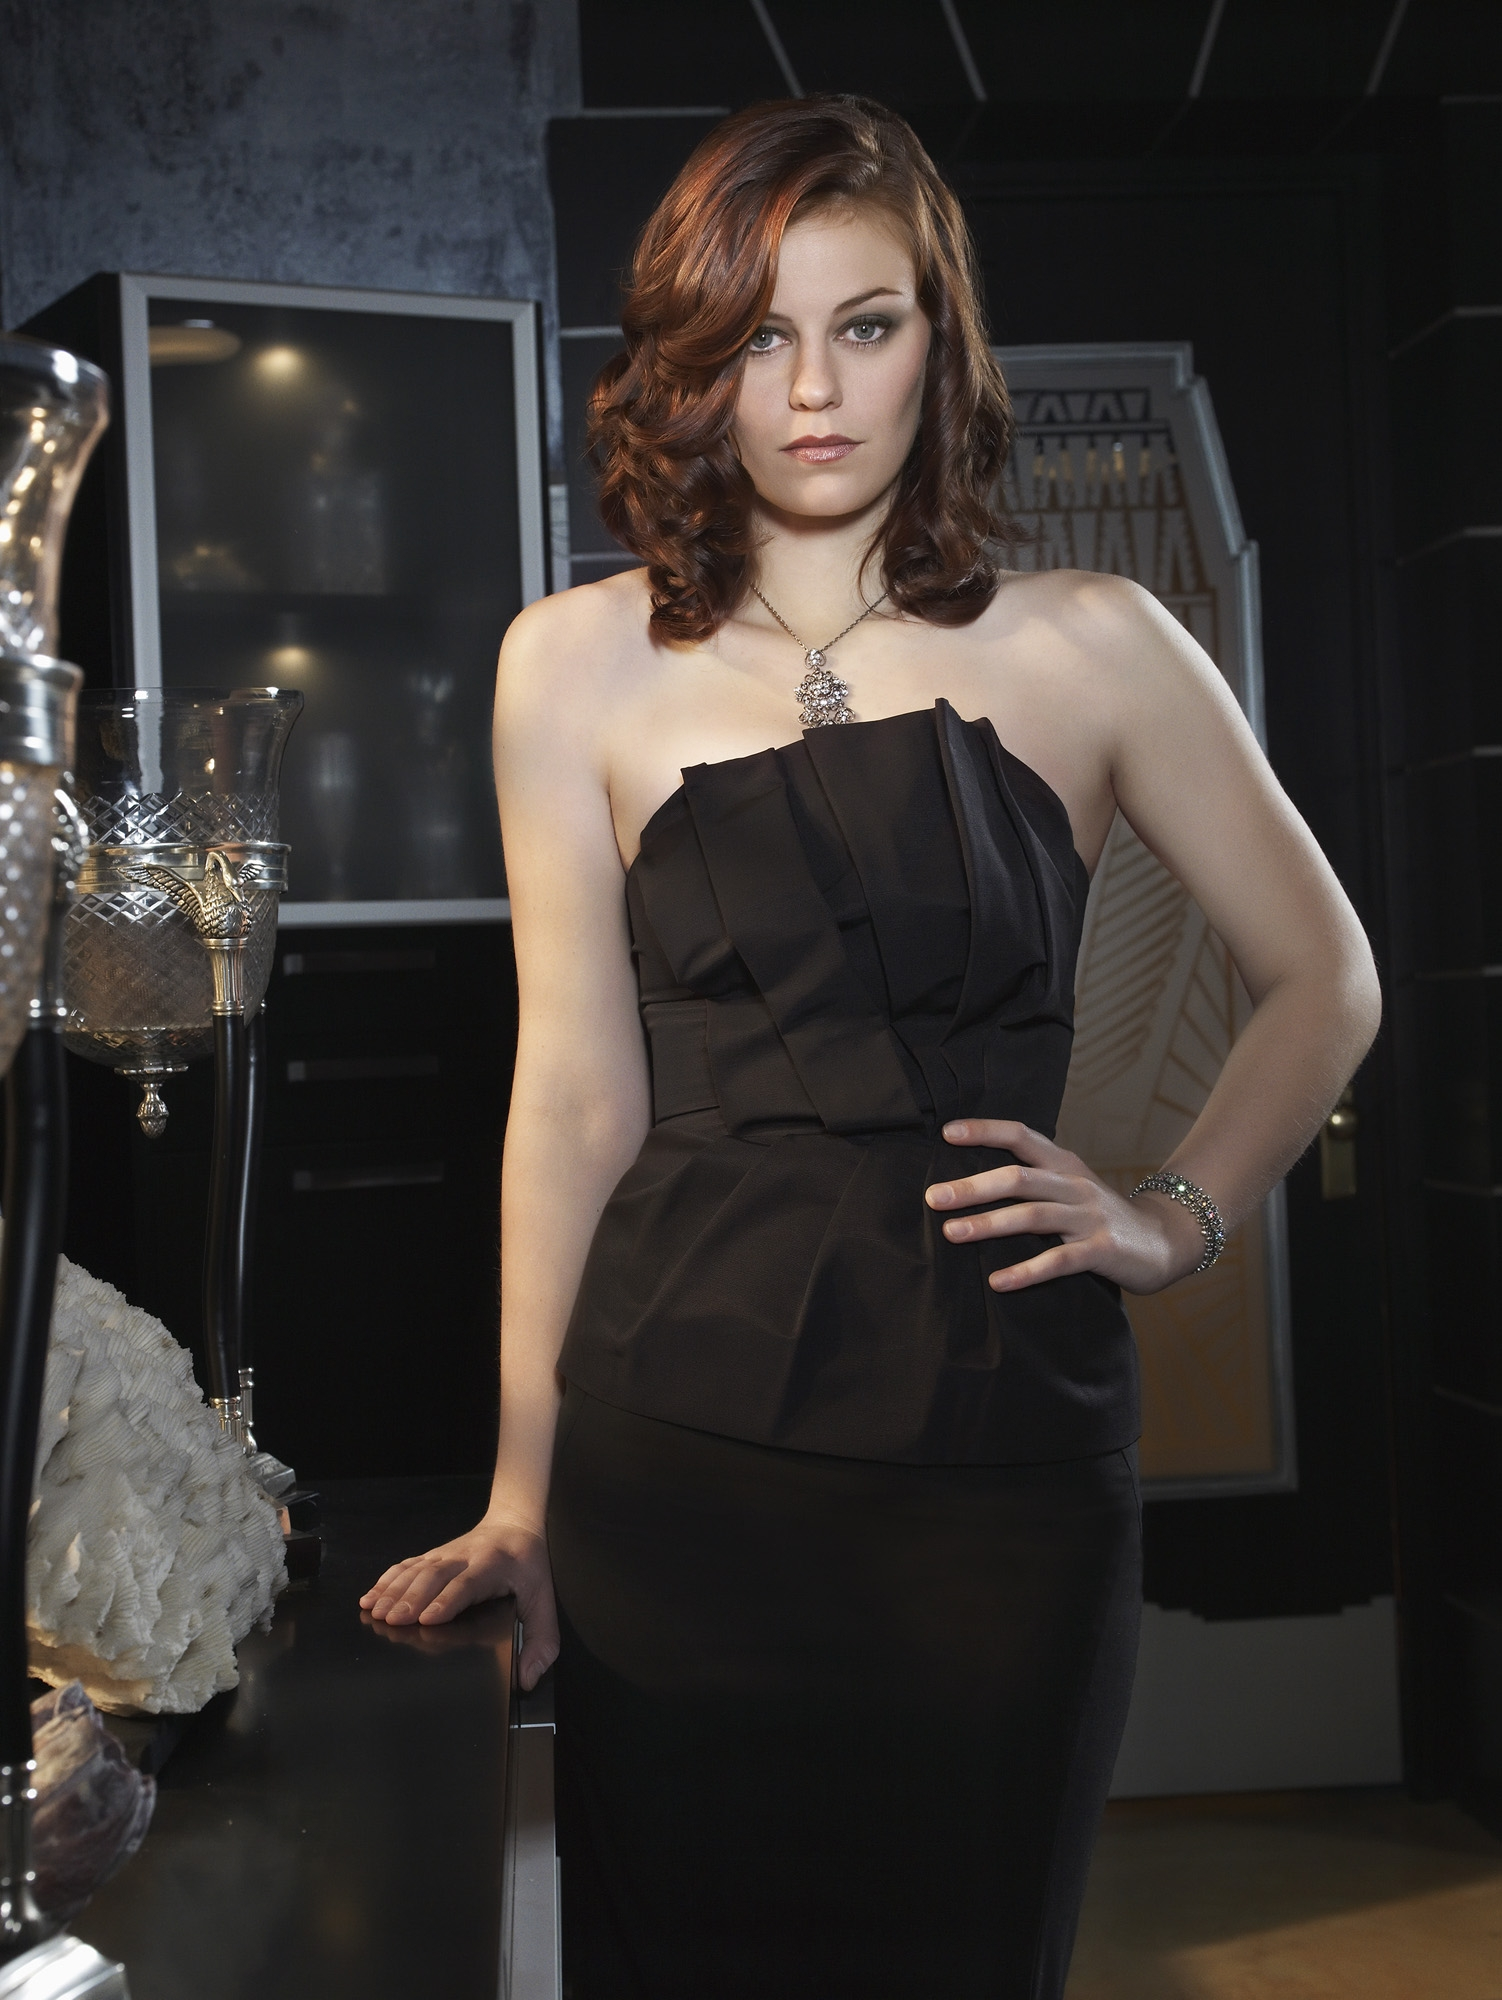 Cassidy Freeman [Smallville] | FEMALE CELEBRITY